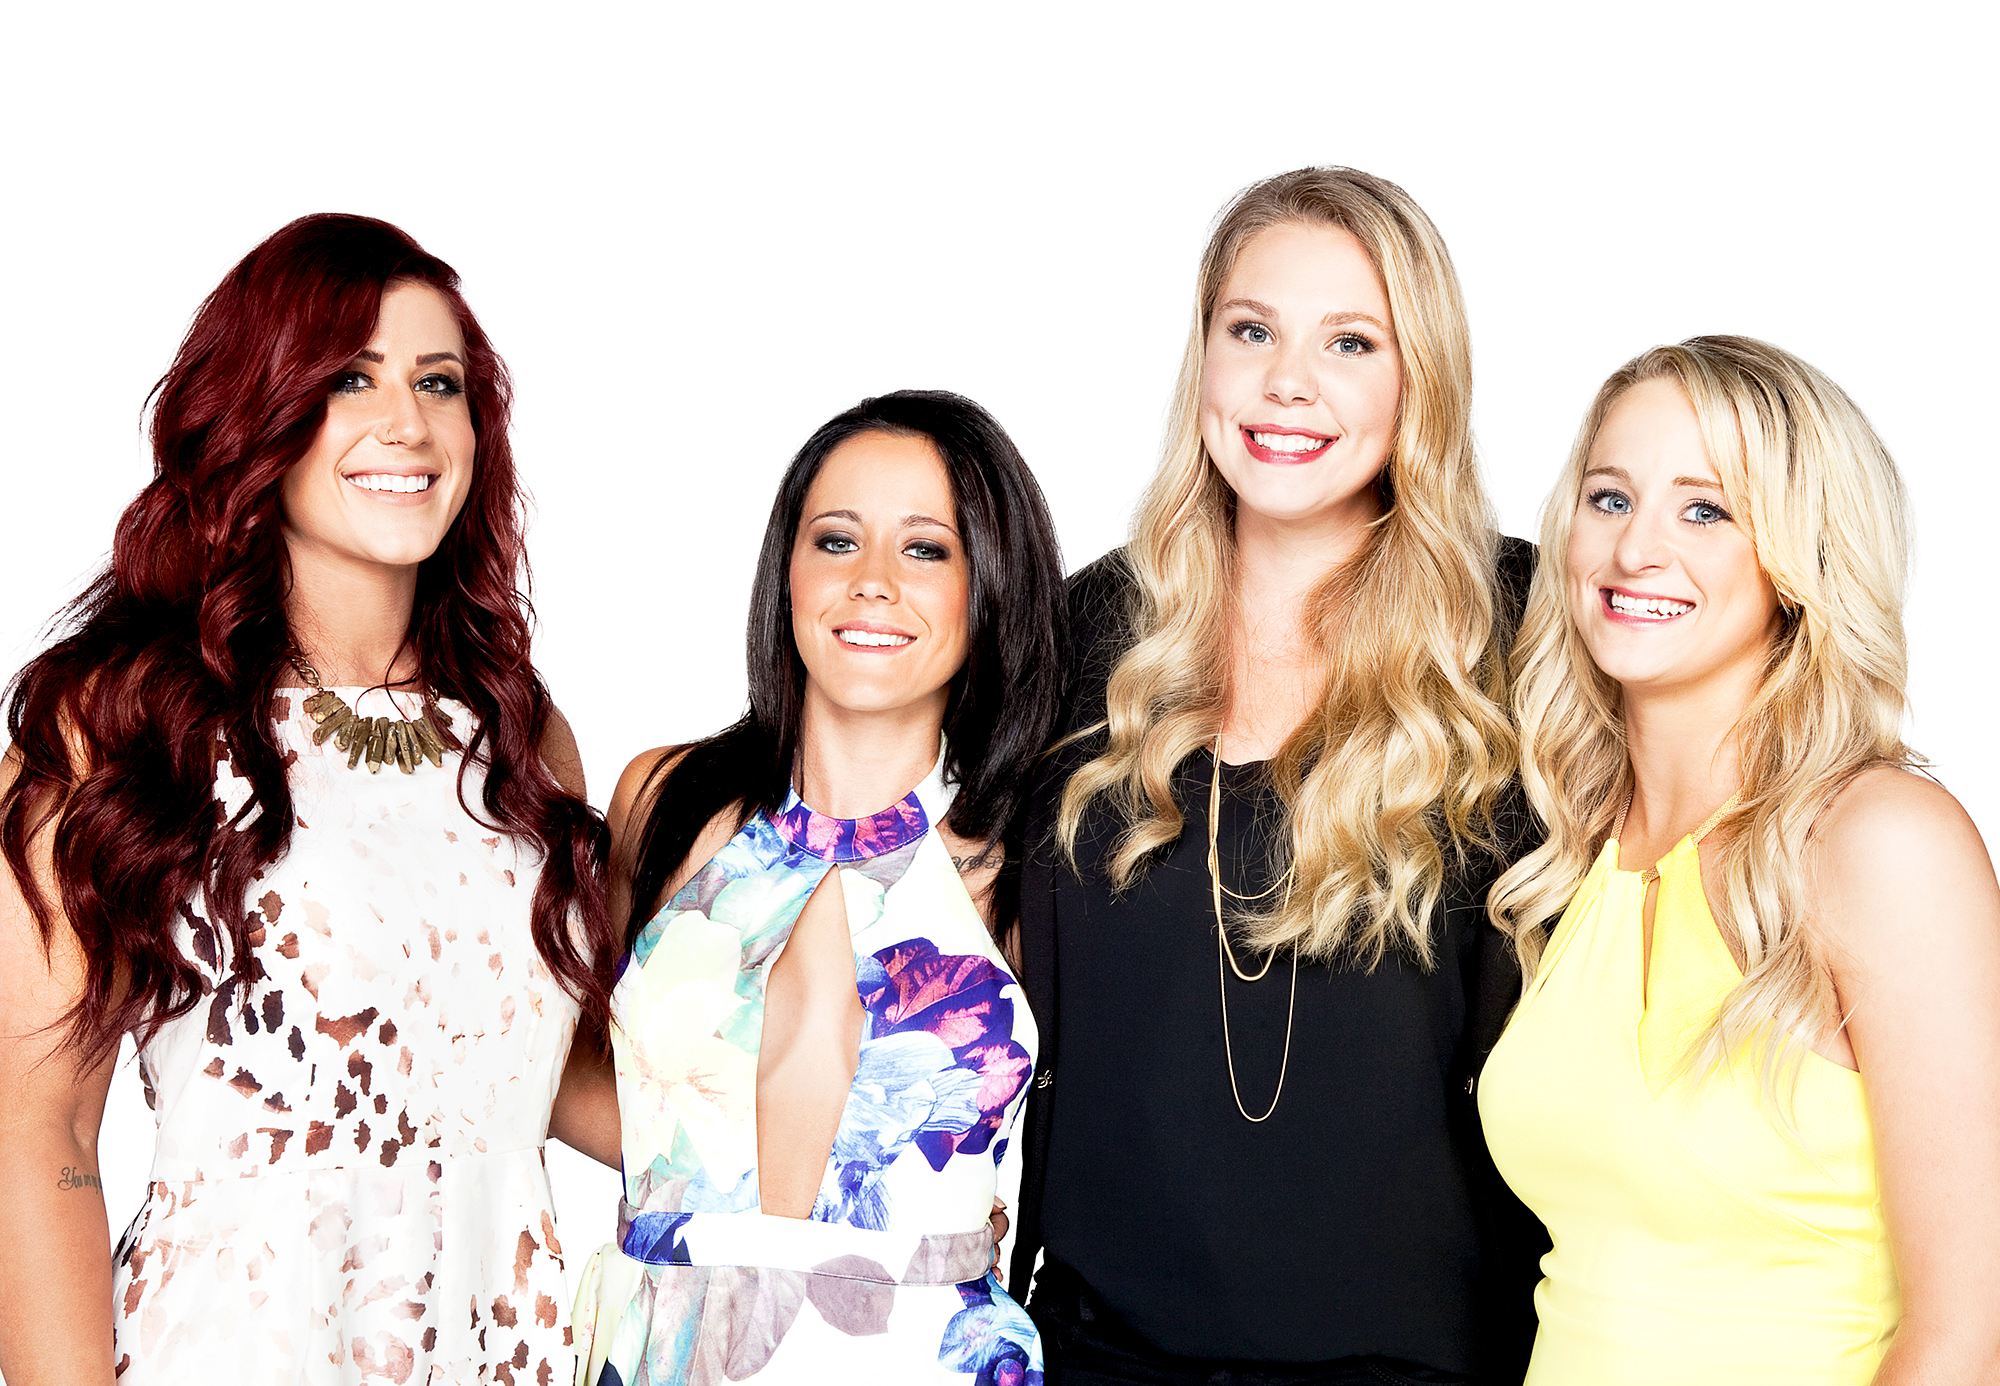 Chelsea Houska, Jenelle Evans, Kailyn Lowry and Leah Messer